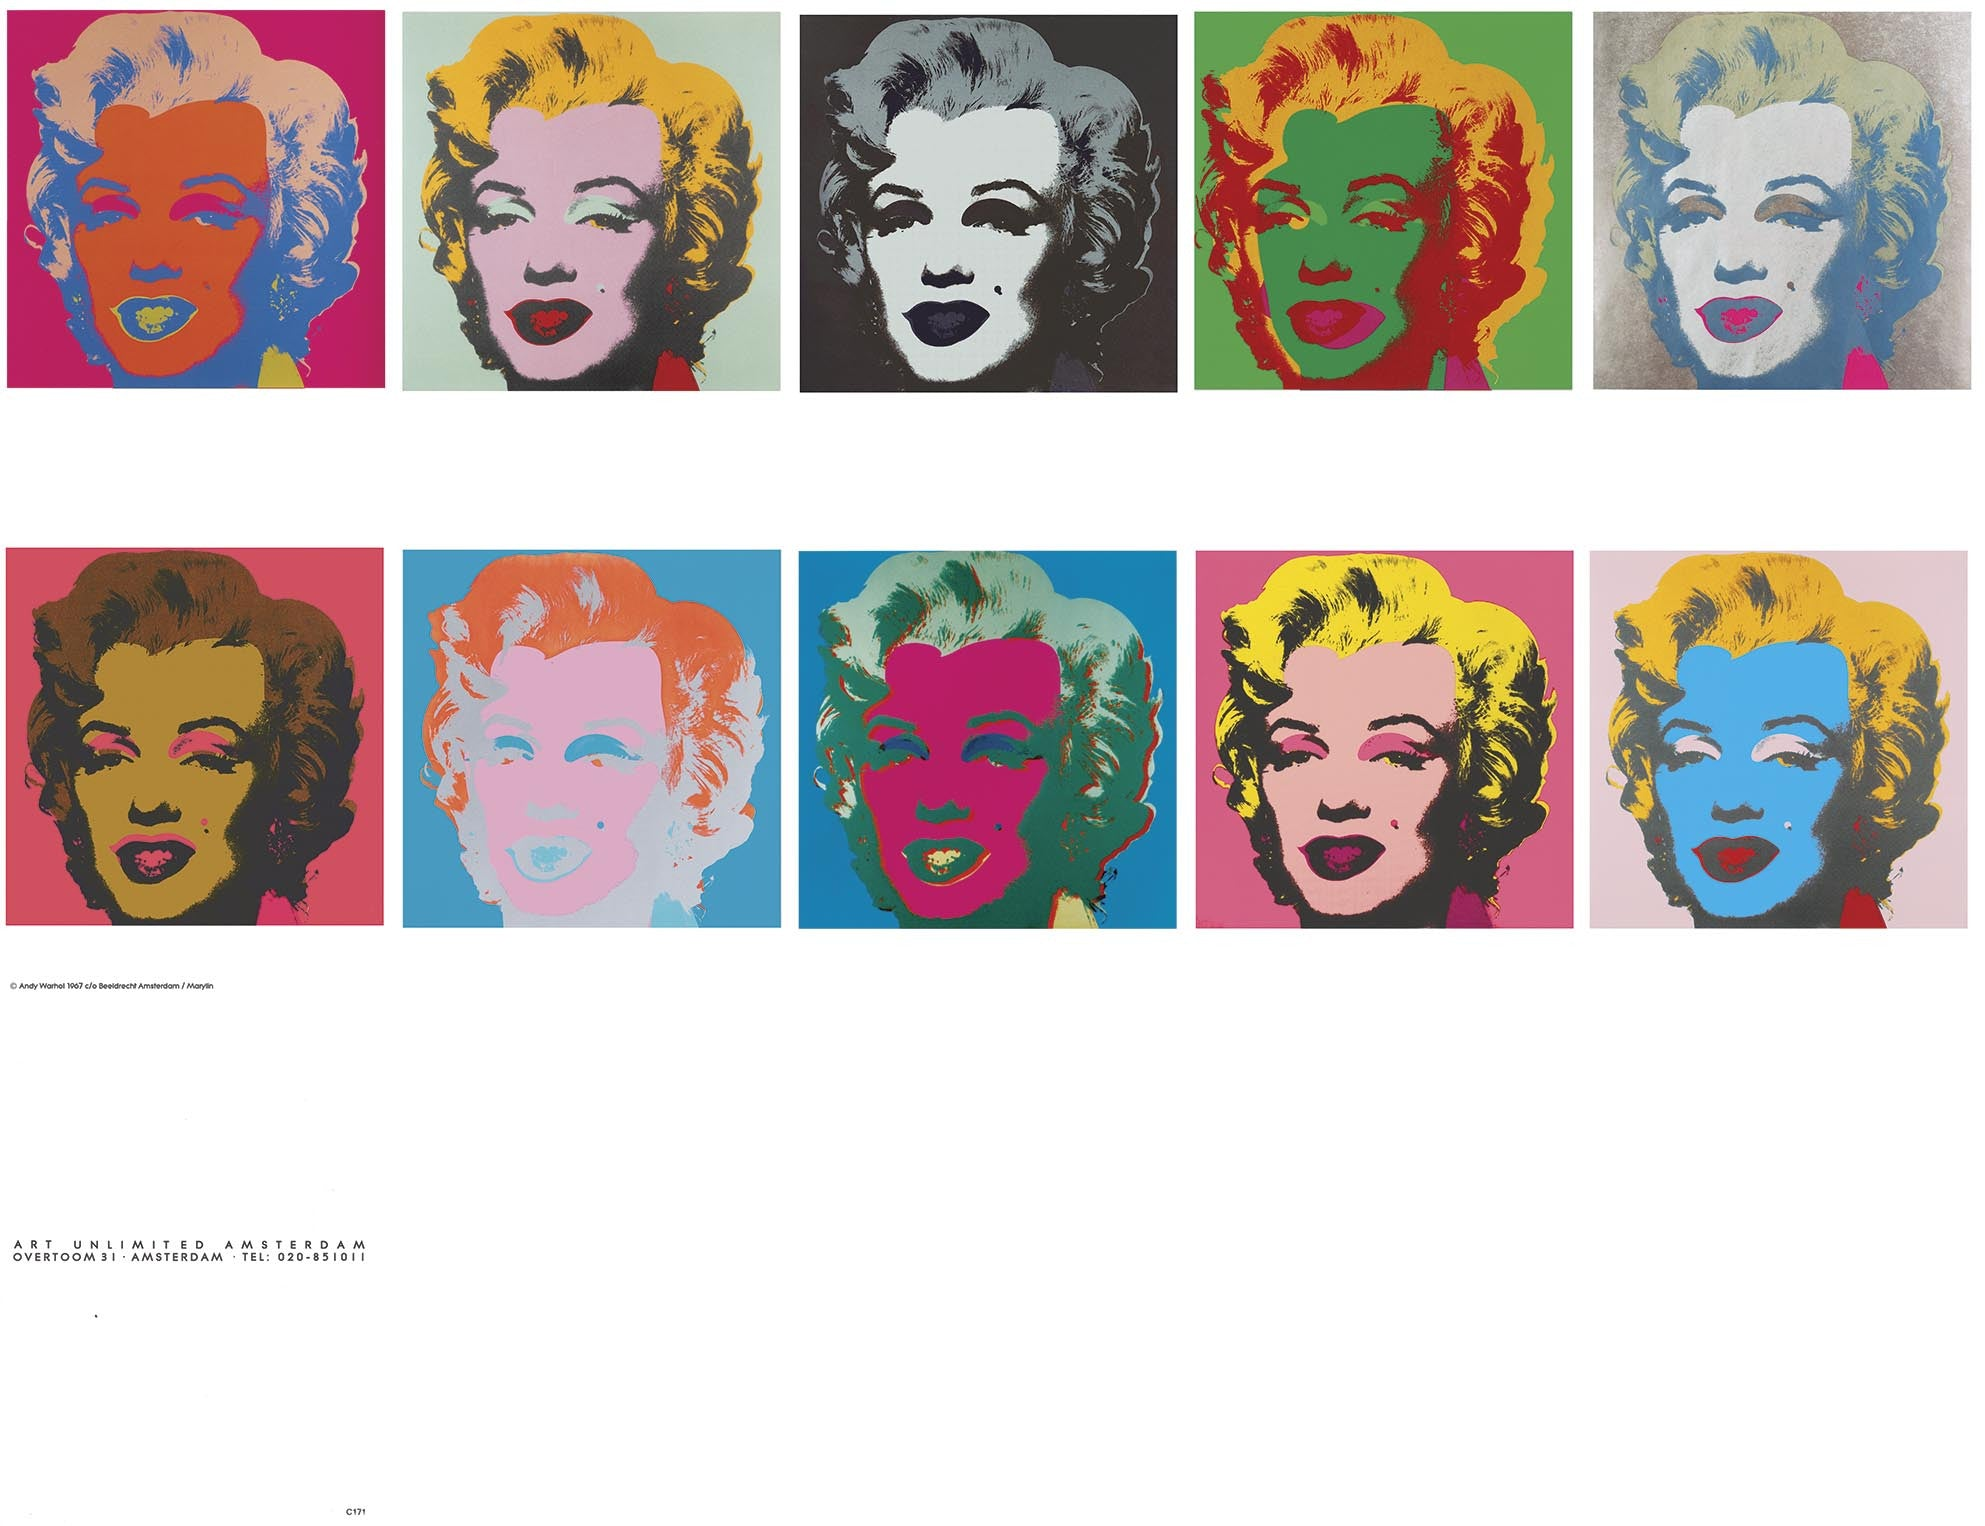 Marilyn Monroe CARDS1967 by Andy Warhol